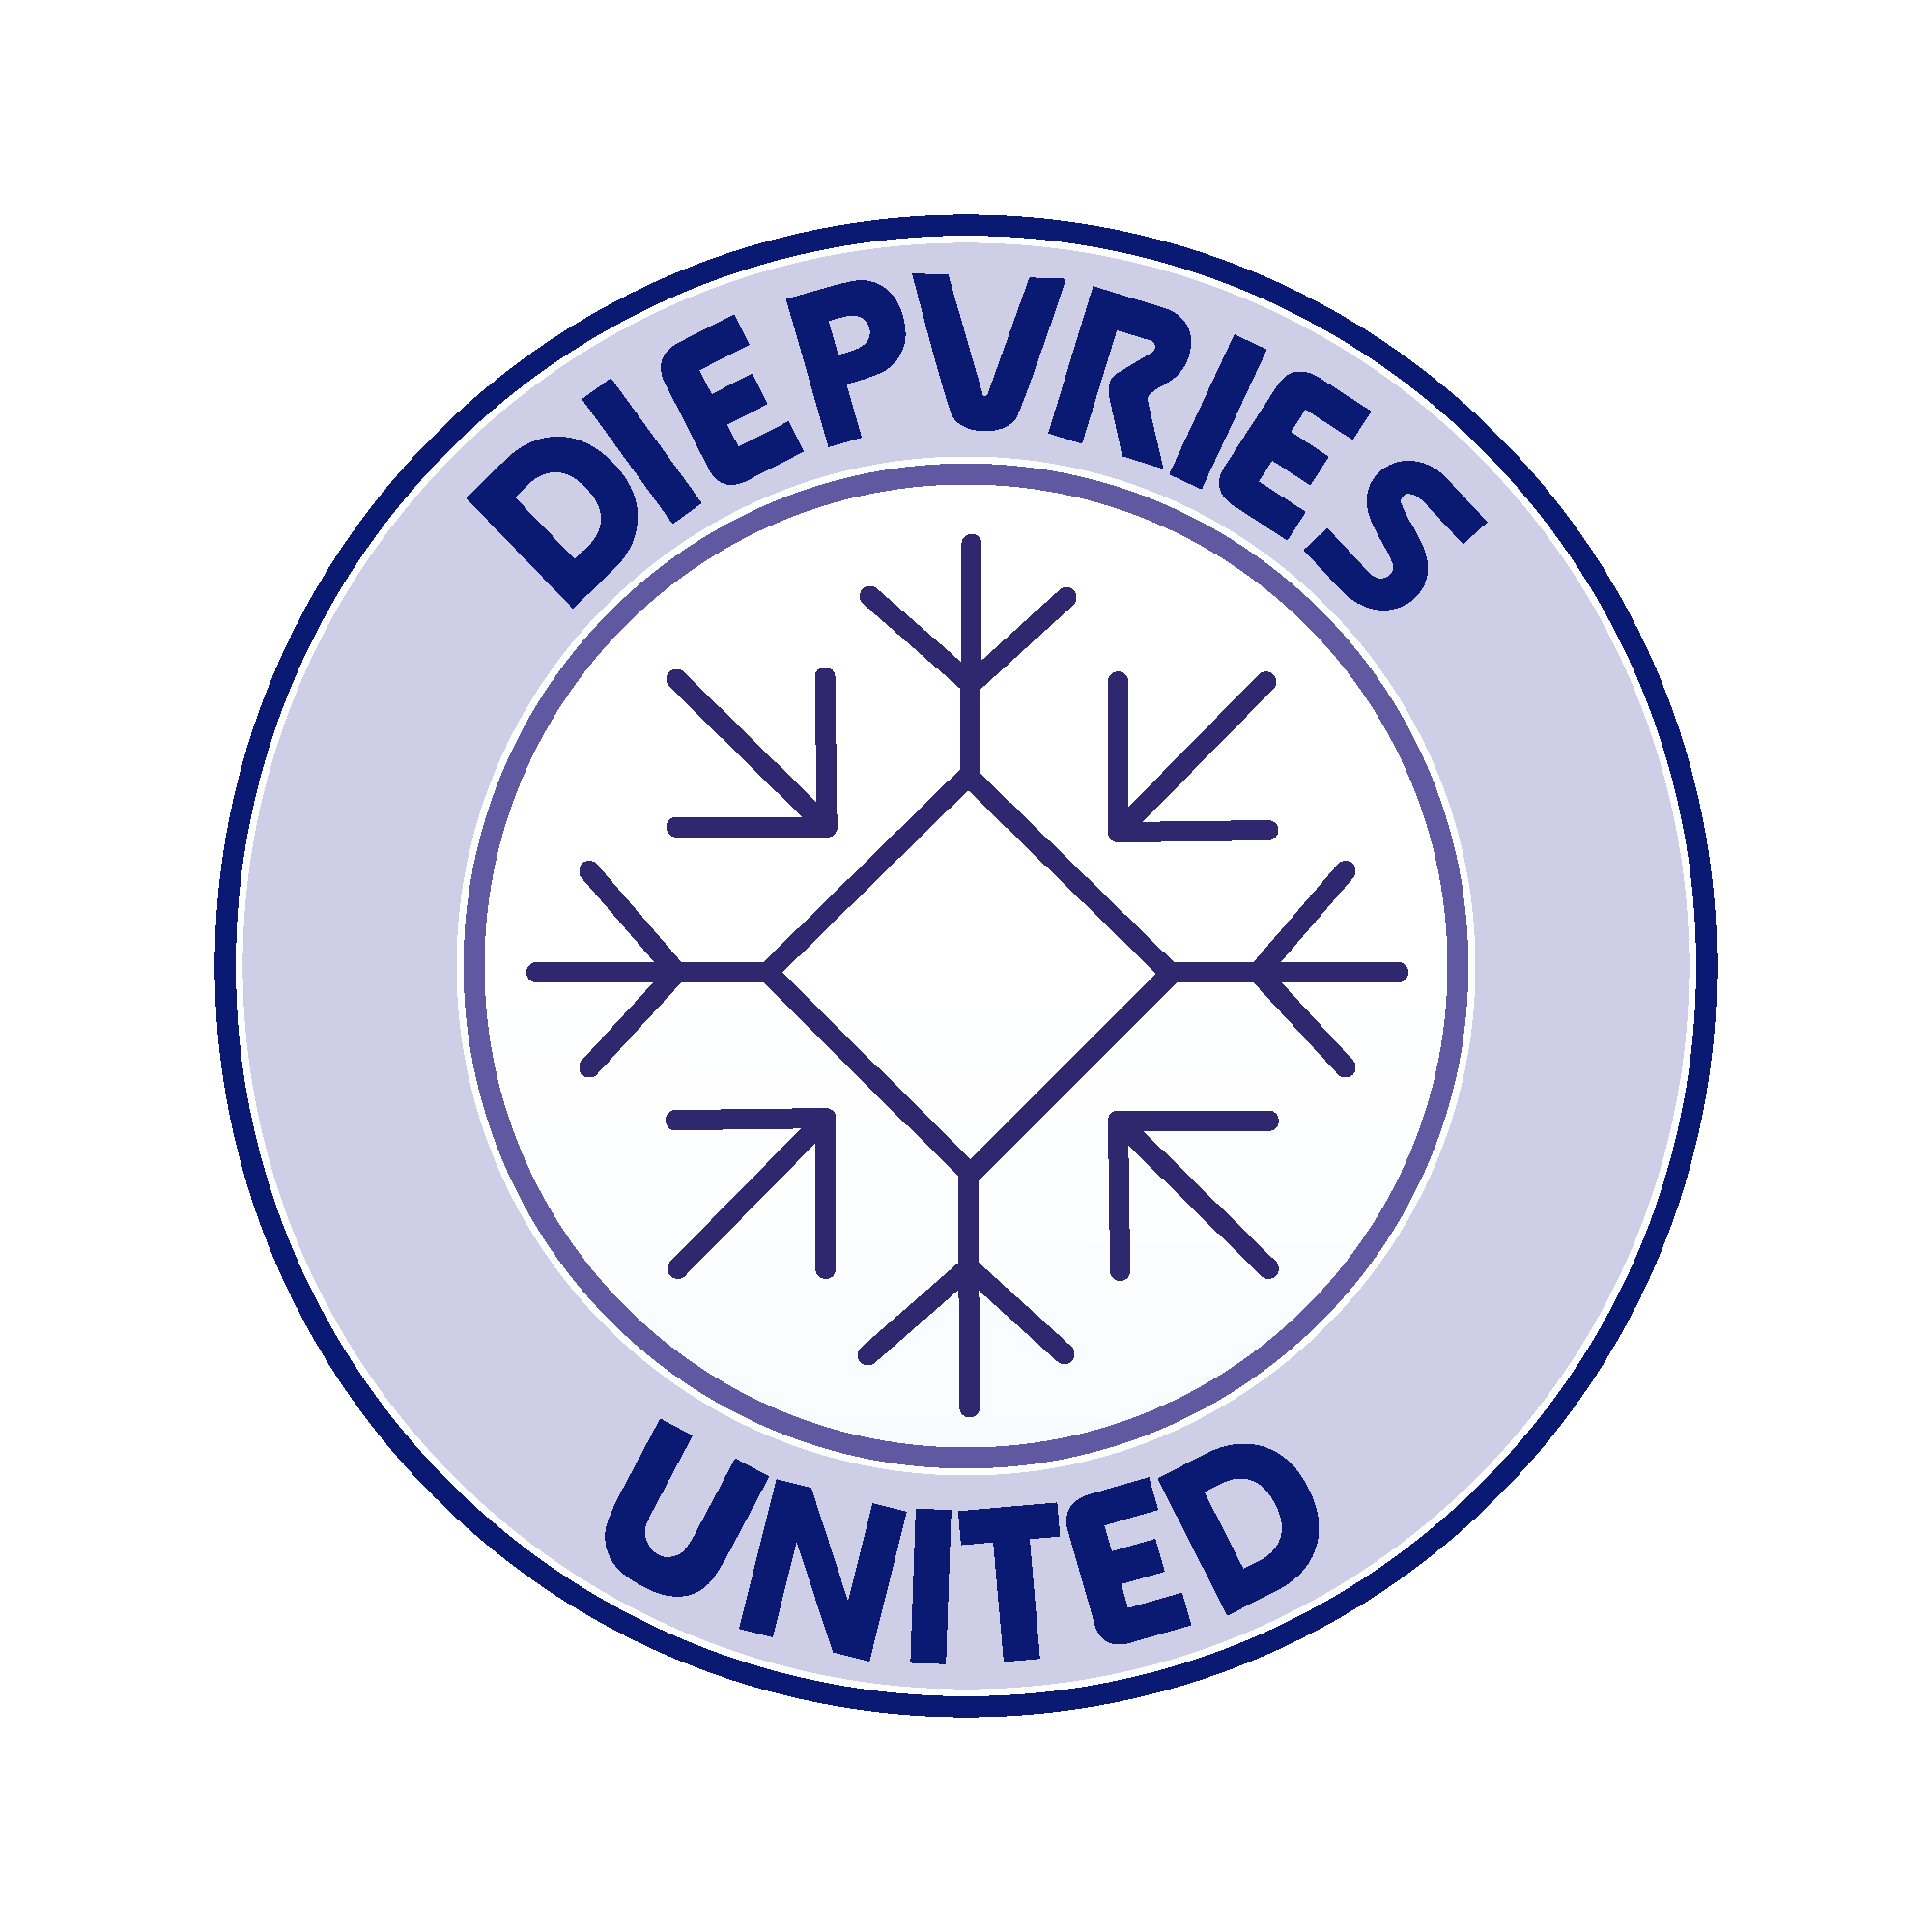 Diepvries United